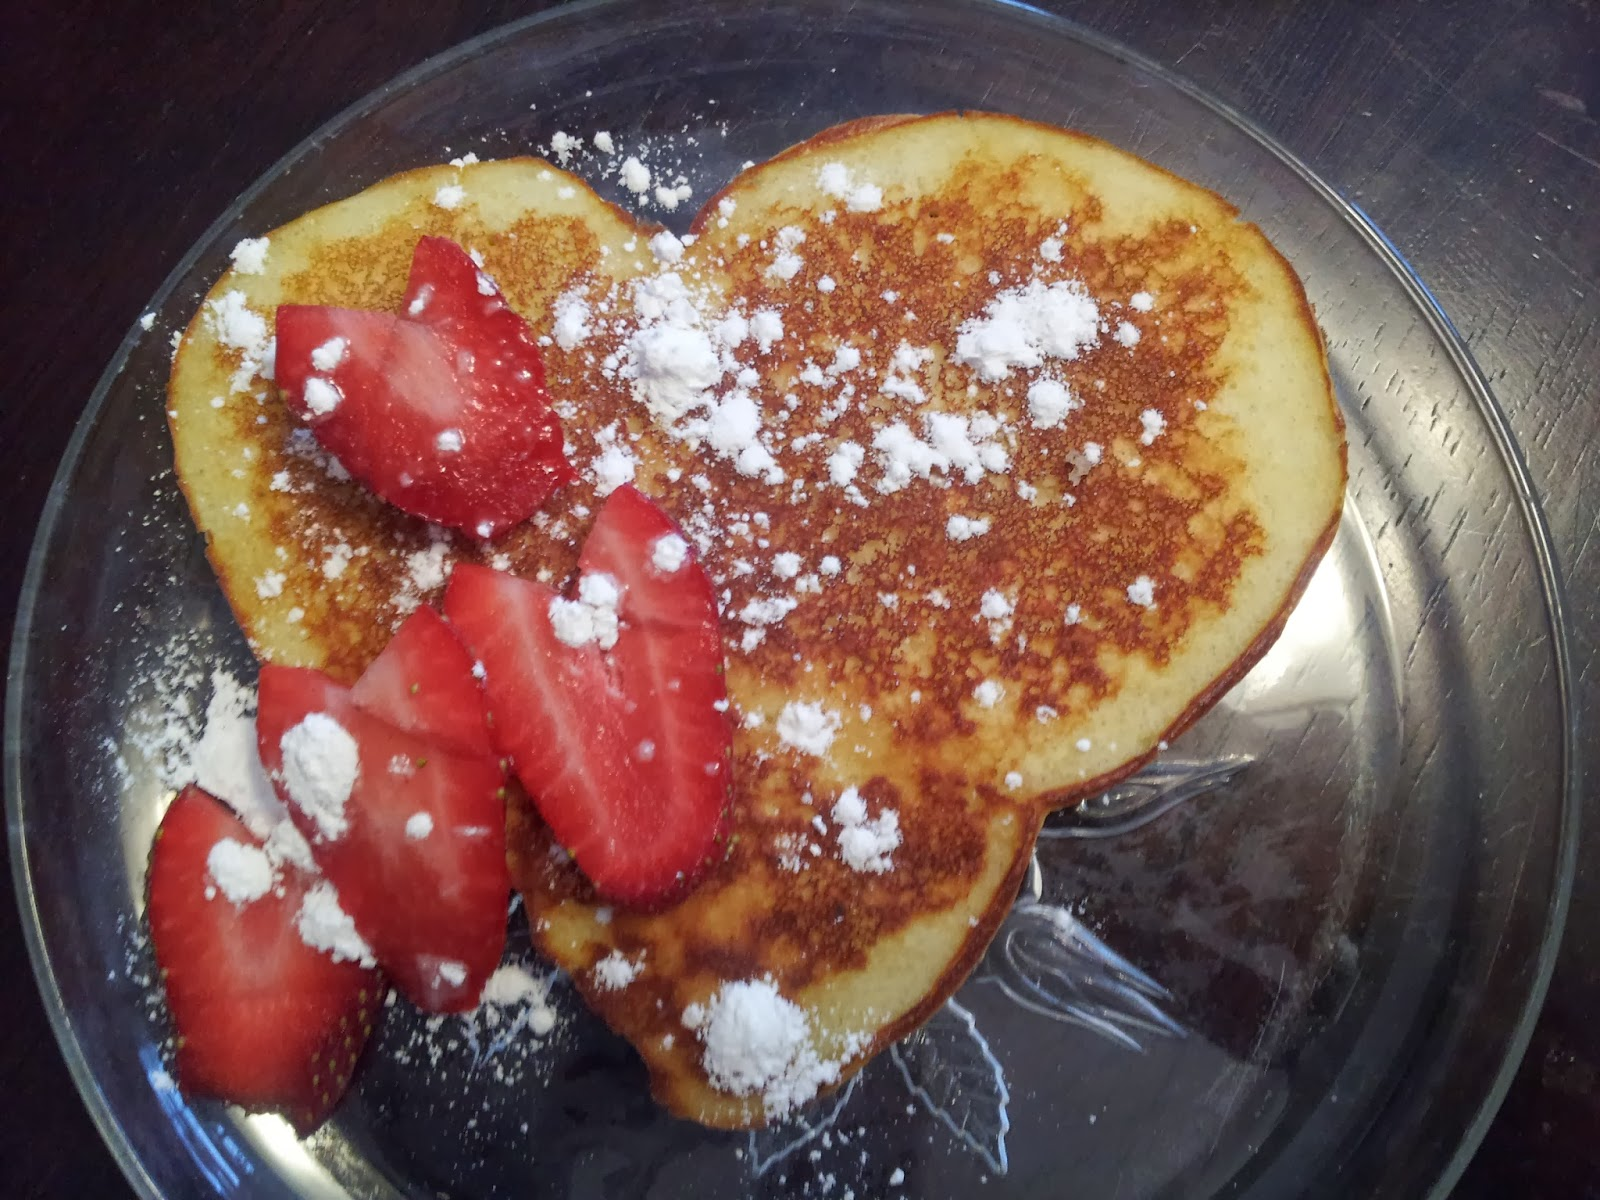 Valentine's Day heart-shaped pancakes and strawberries, breakfast